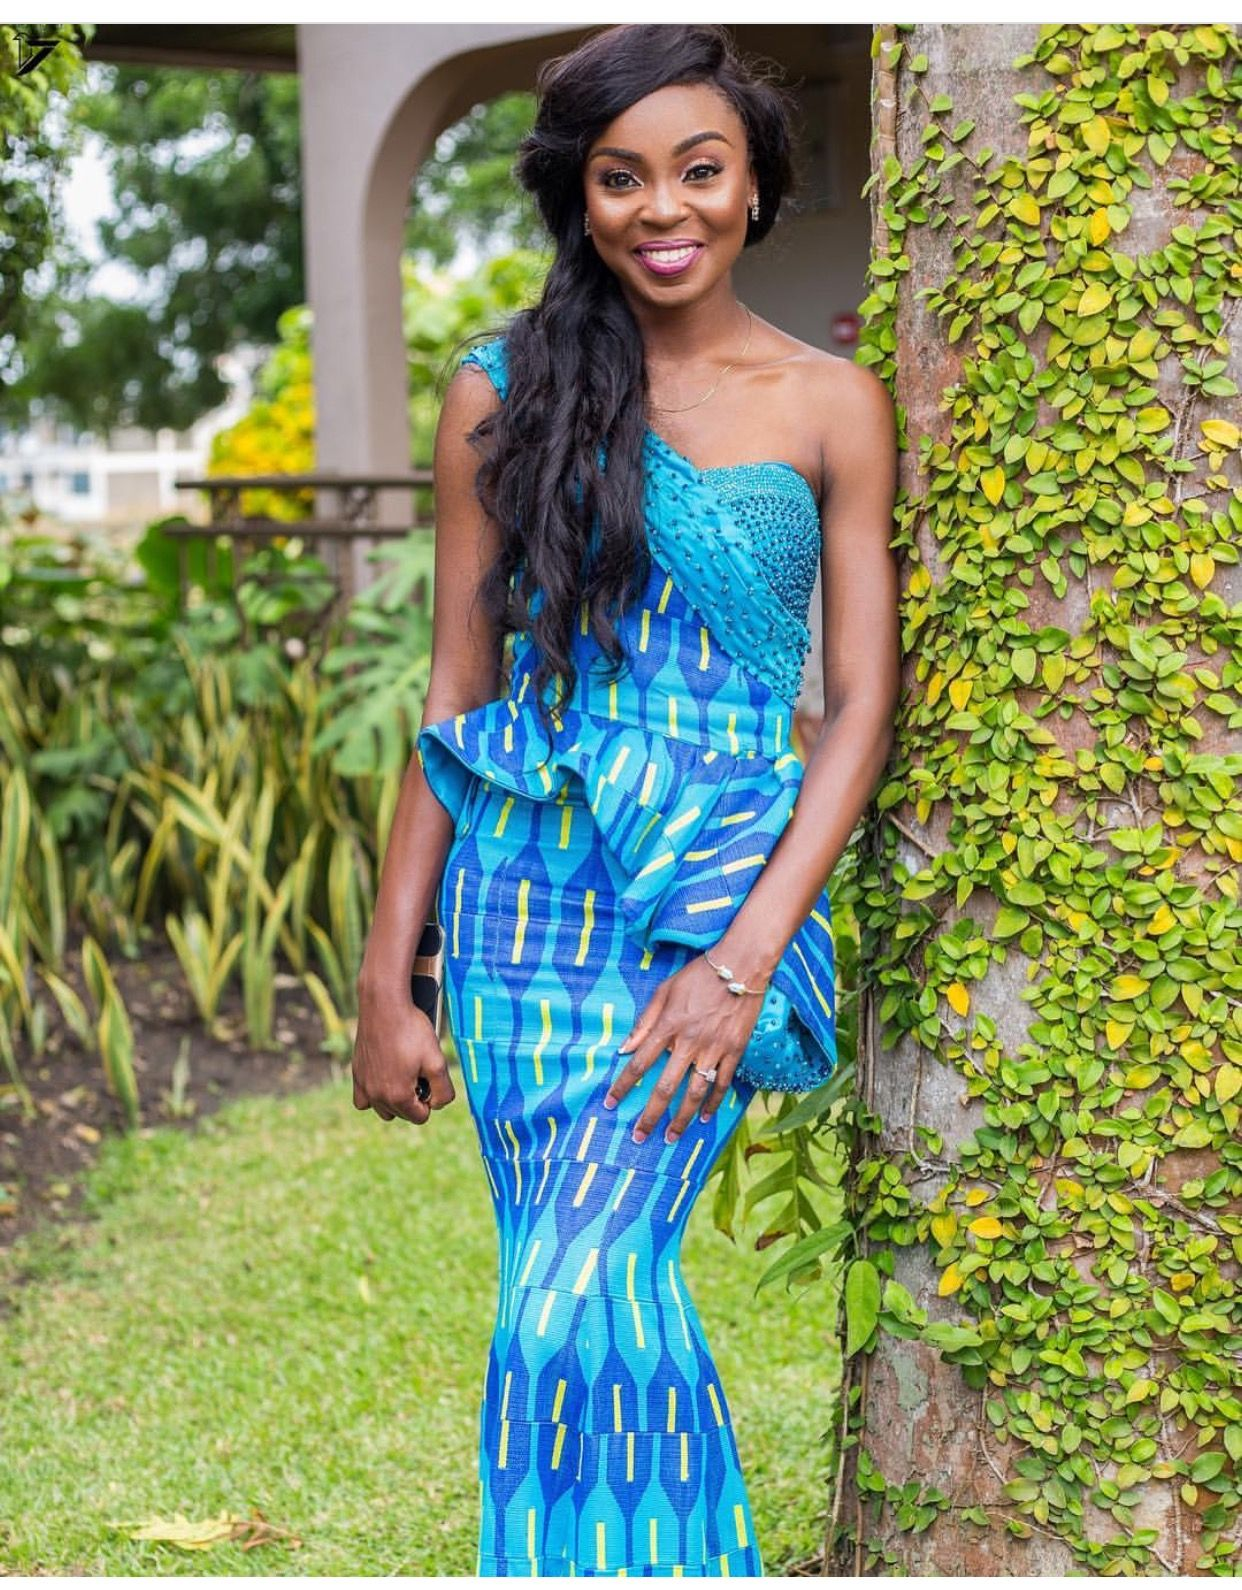 Issa kente distin beautiful lucille on her engagement kente